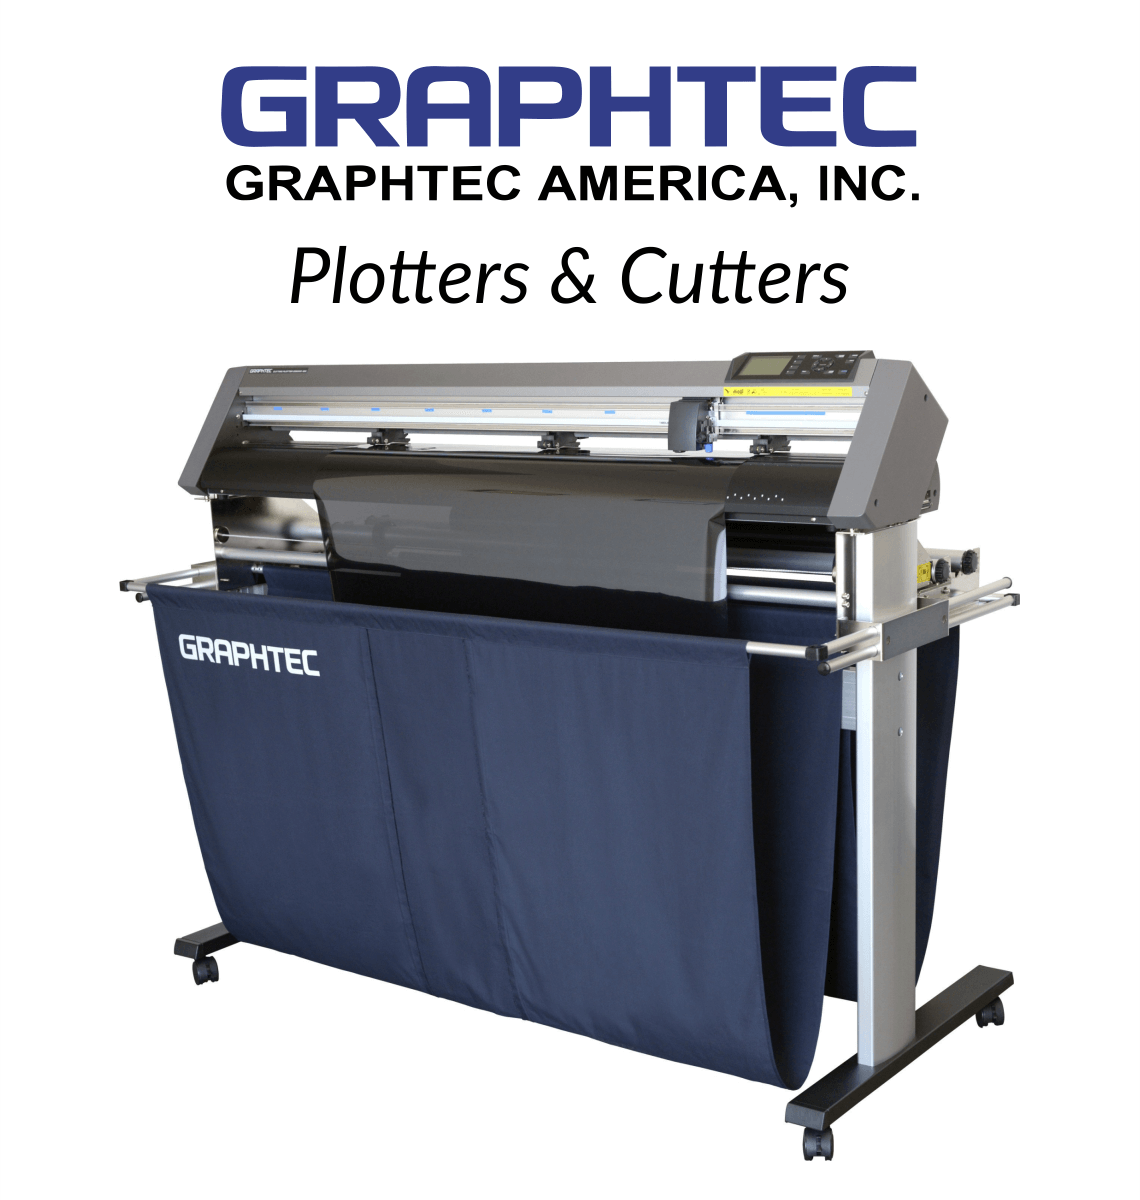 Browse Graphtec Plotters & Cutters